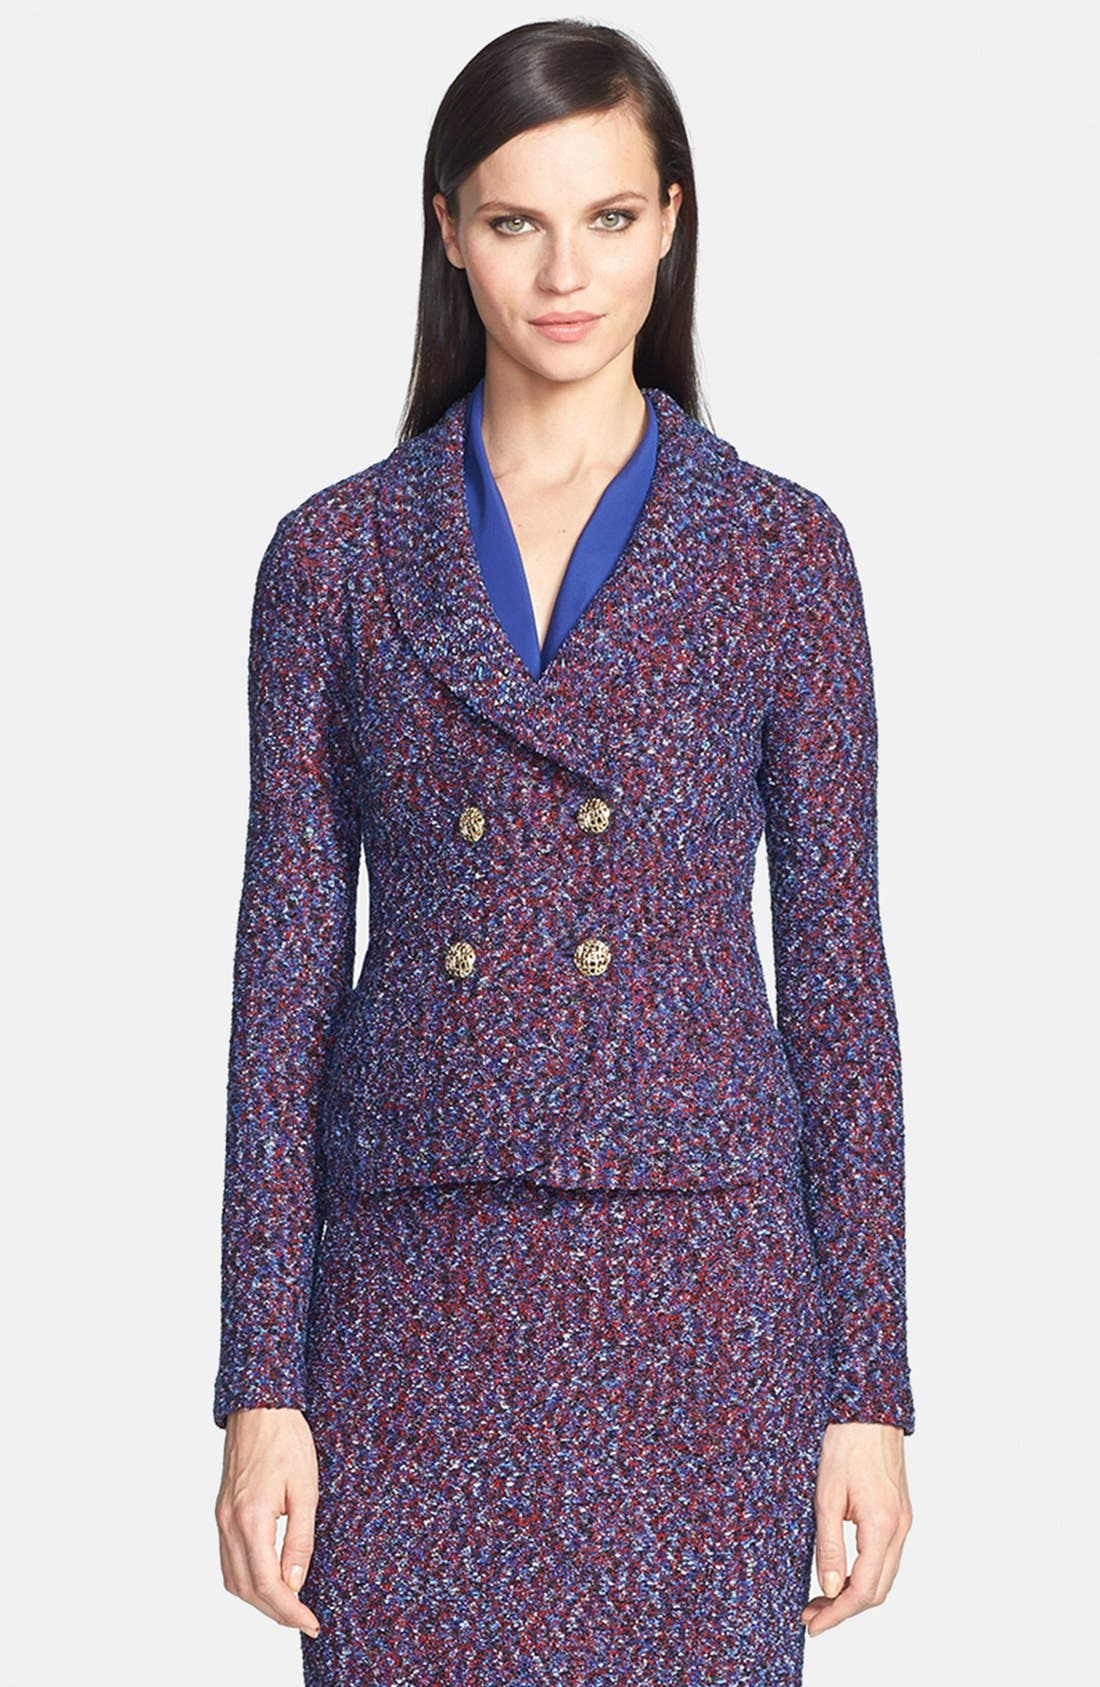 Main Image - St. John Collection Looped Lash Tweed Knit Jacket